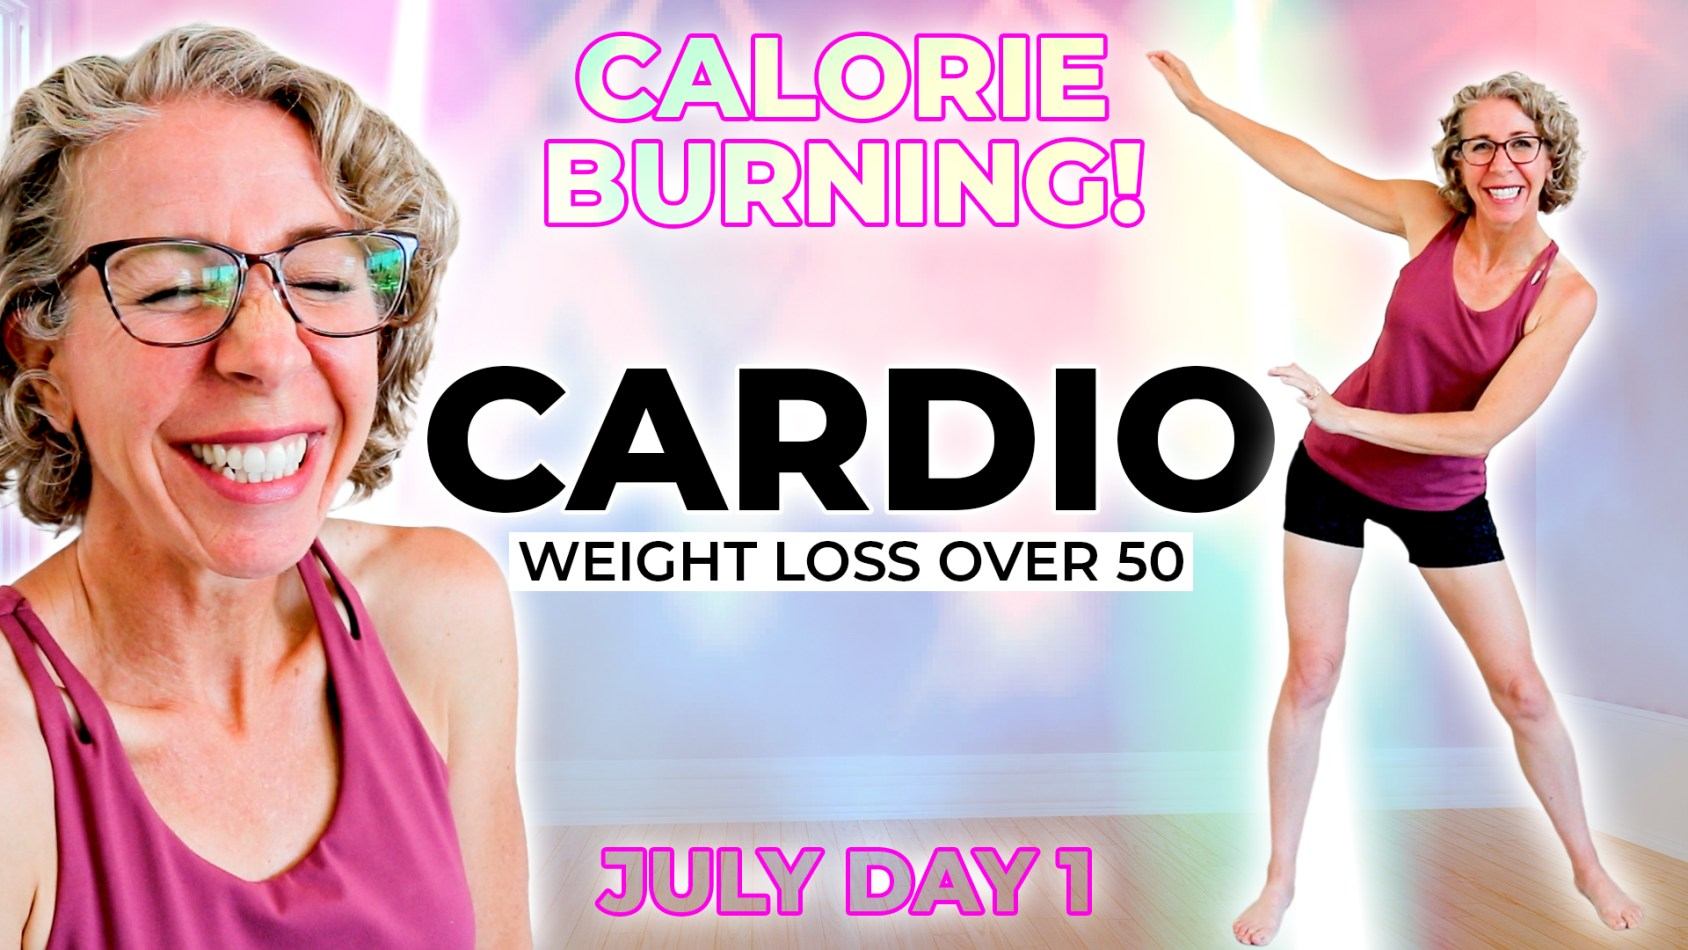 Fun WALKING Cardio Party???? Over 3000 Steps!